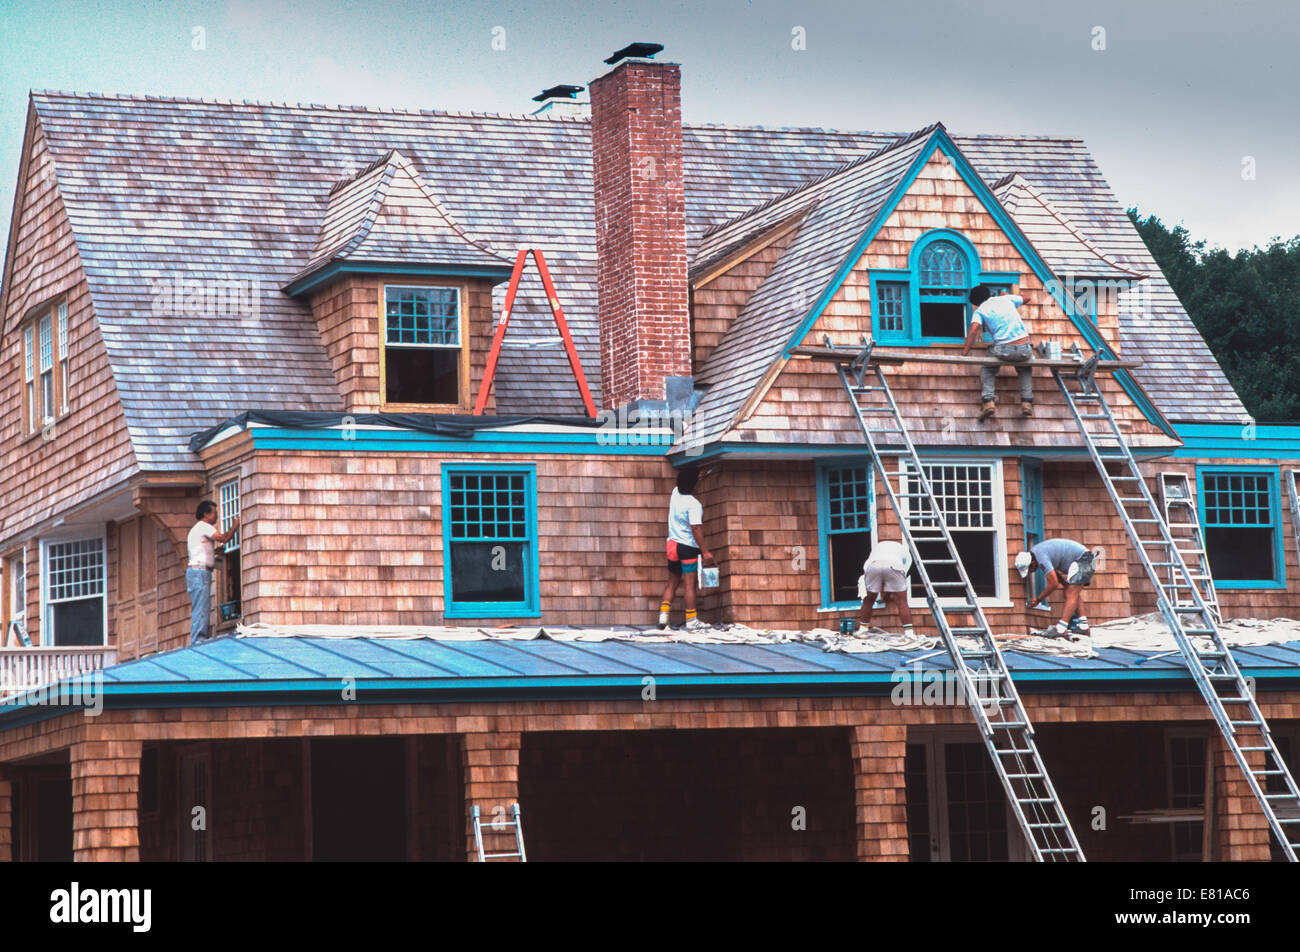 Construction Workers in Long Island, New York - Stock Image